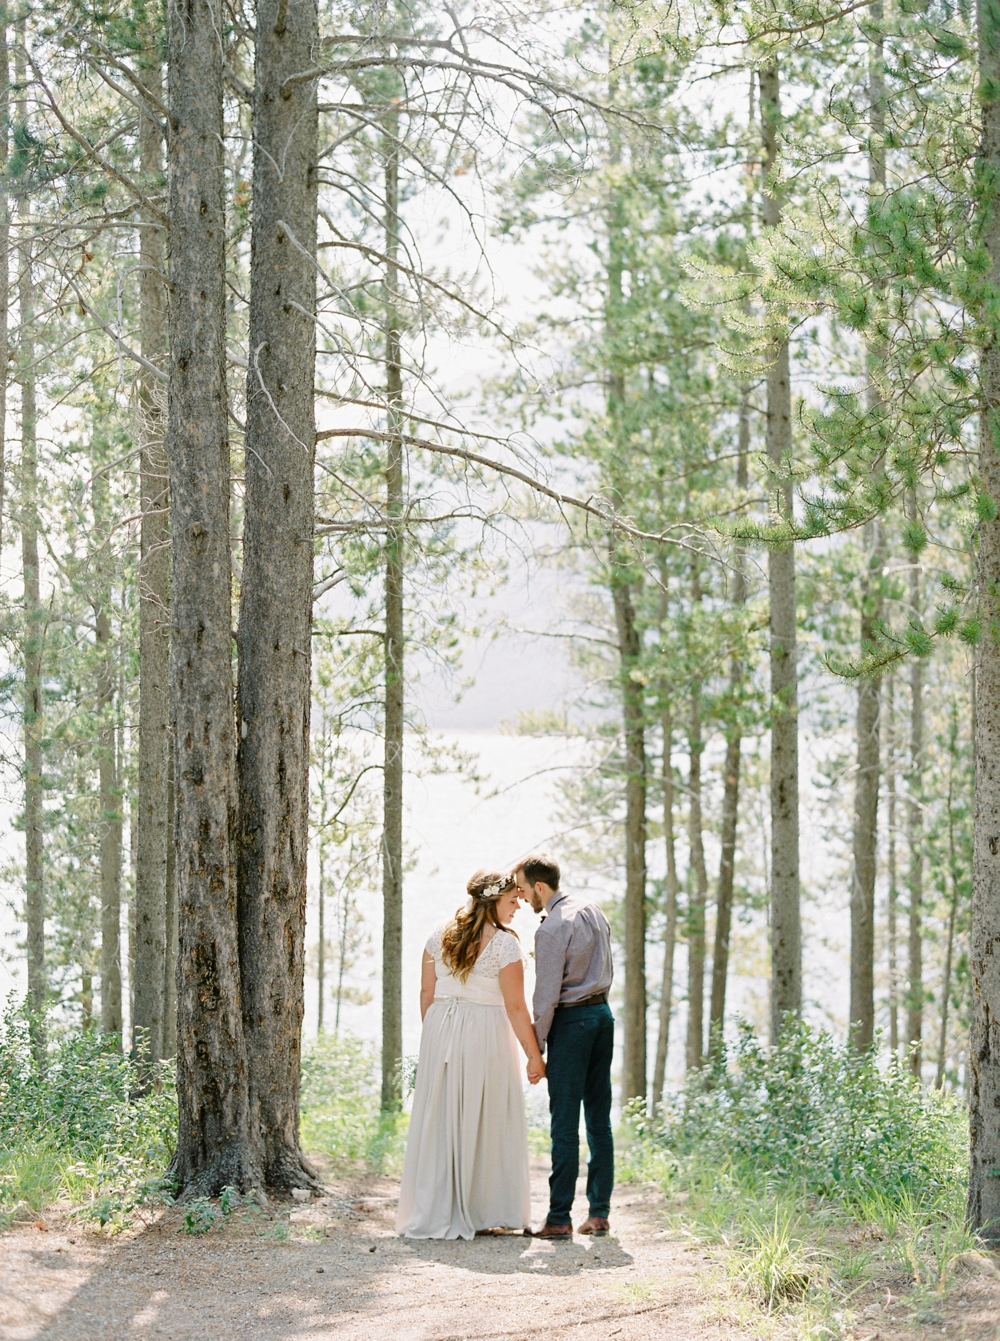 Calgary Canmore and Banff Rocky Mountain Wedding Photographer | Kananaskis Mountain Intimate wedding elopement | Justine Milton Photography